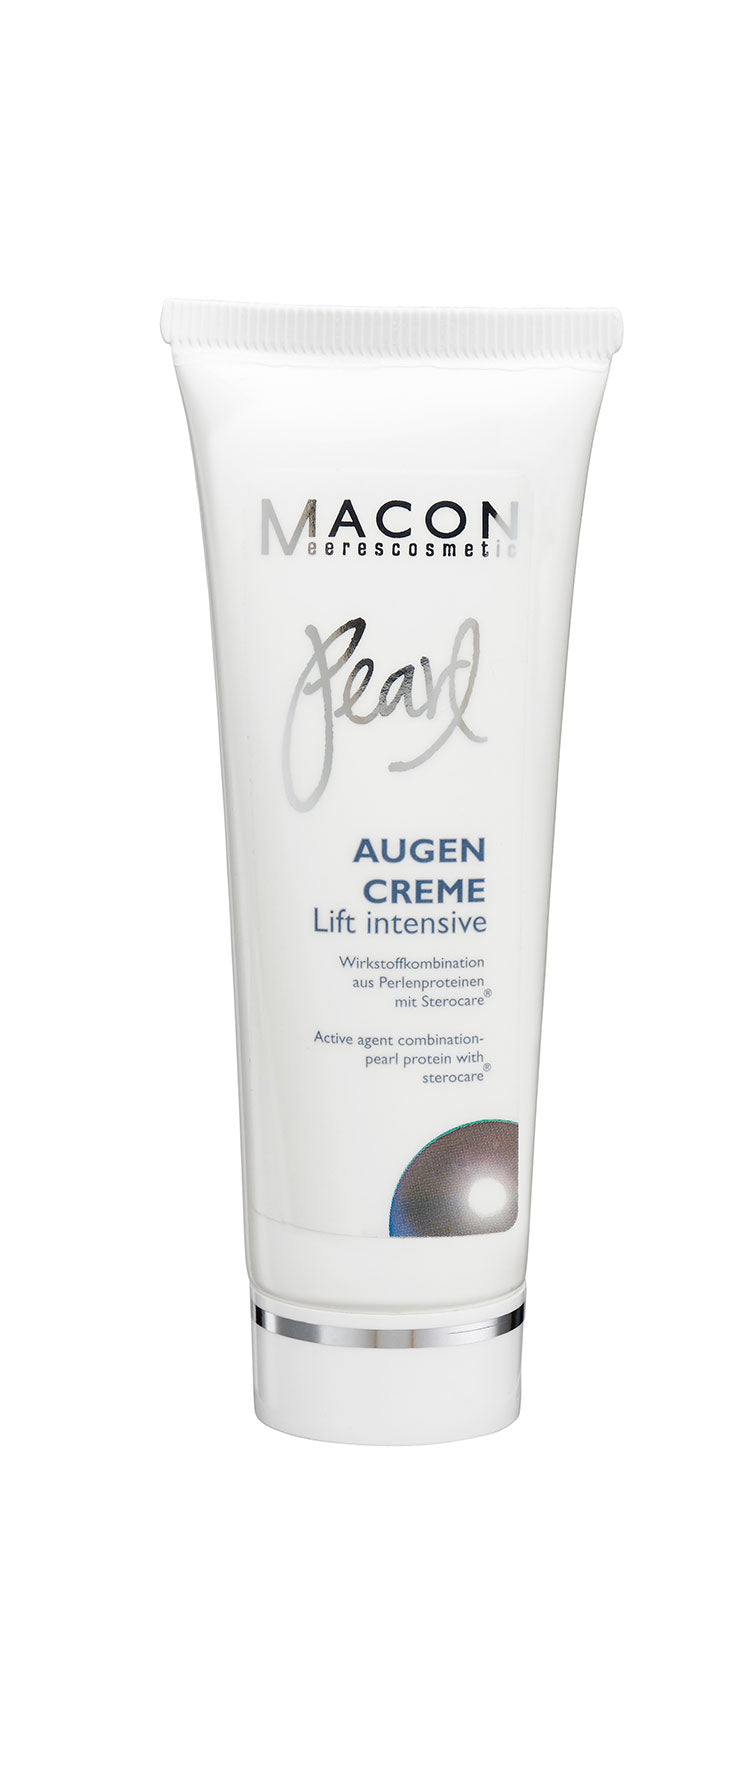 Pearl Augencreme Lift intensive